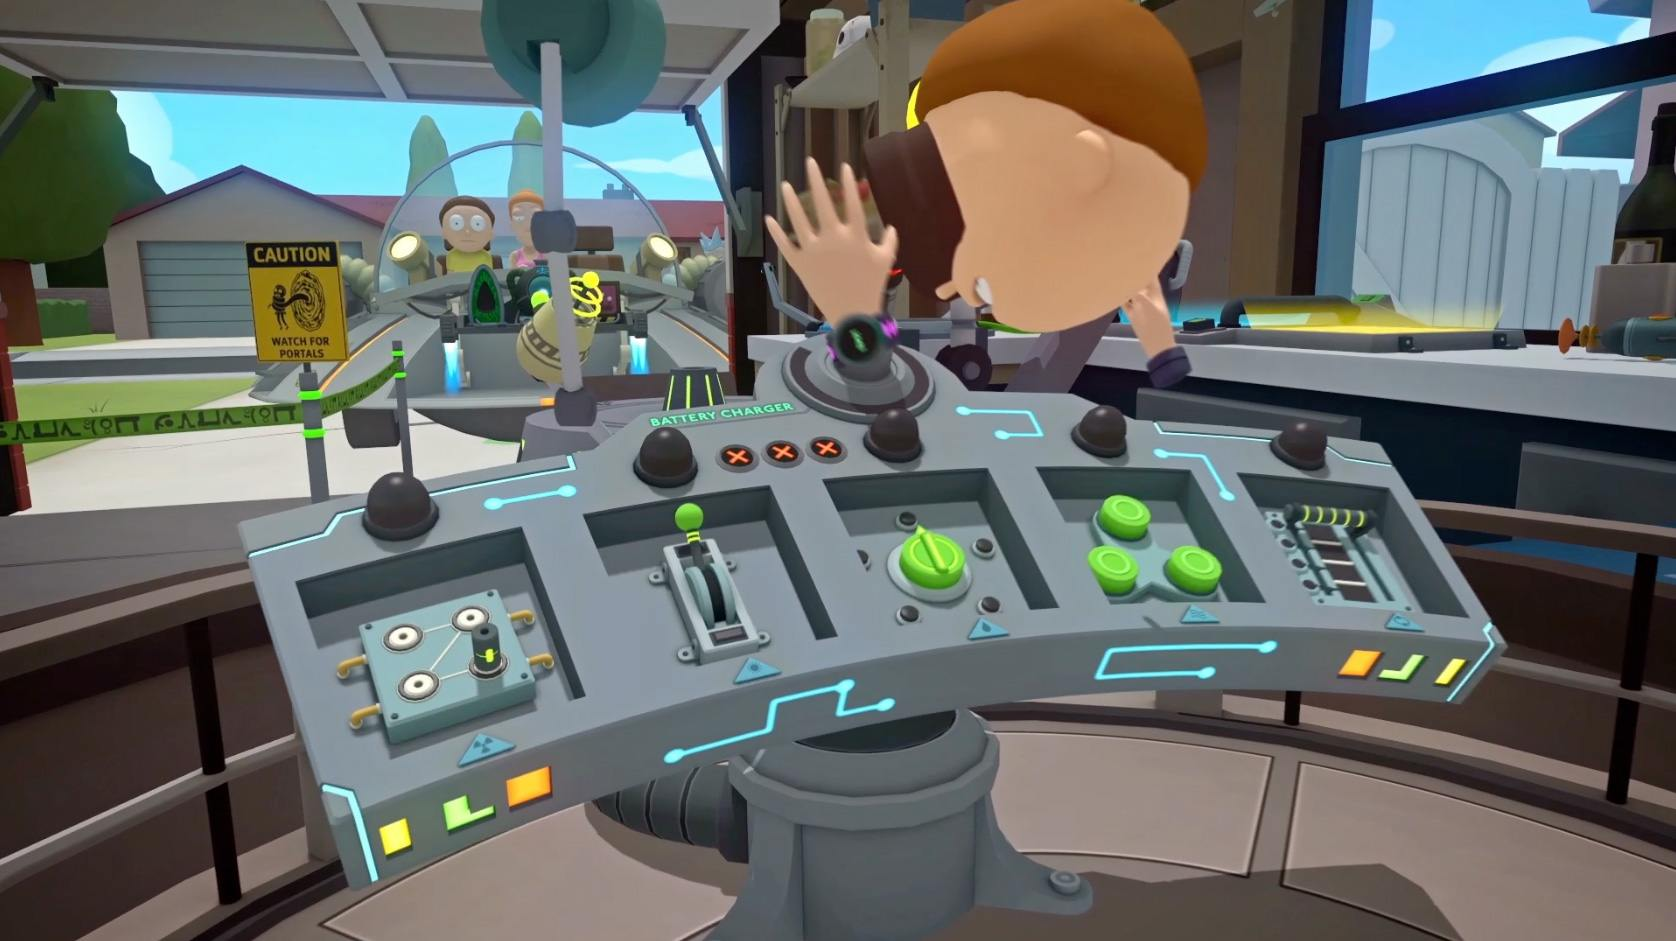 『Rick and Morty VR』のミクロ宇宙バッテリー